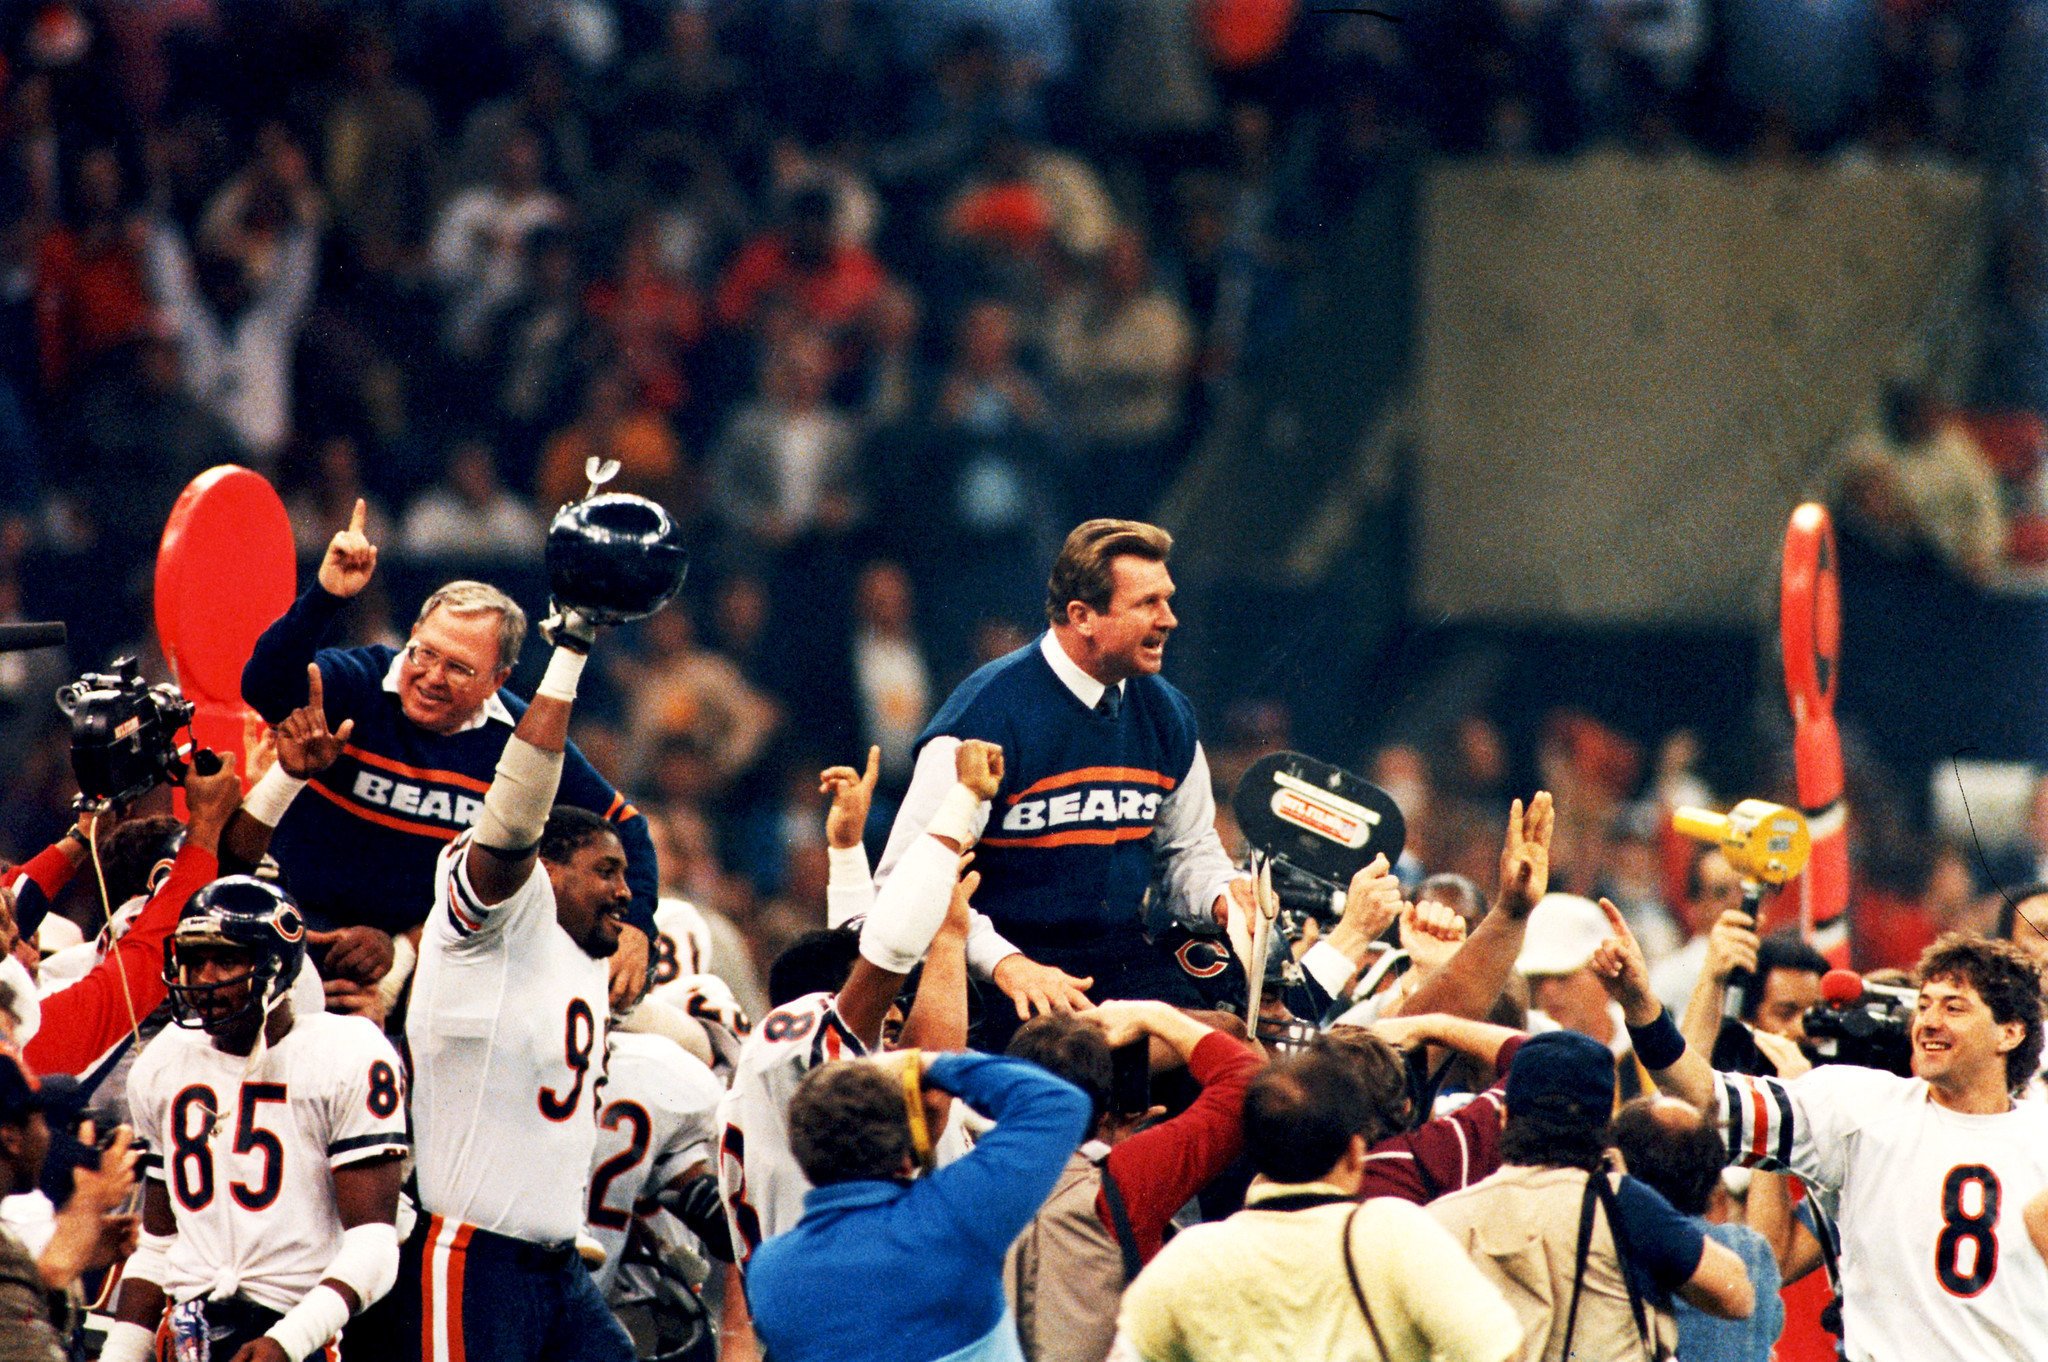 super bowl 20 photos bears win bowl xx on jan 26 1986 chicago 29824